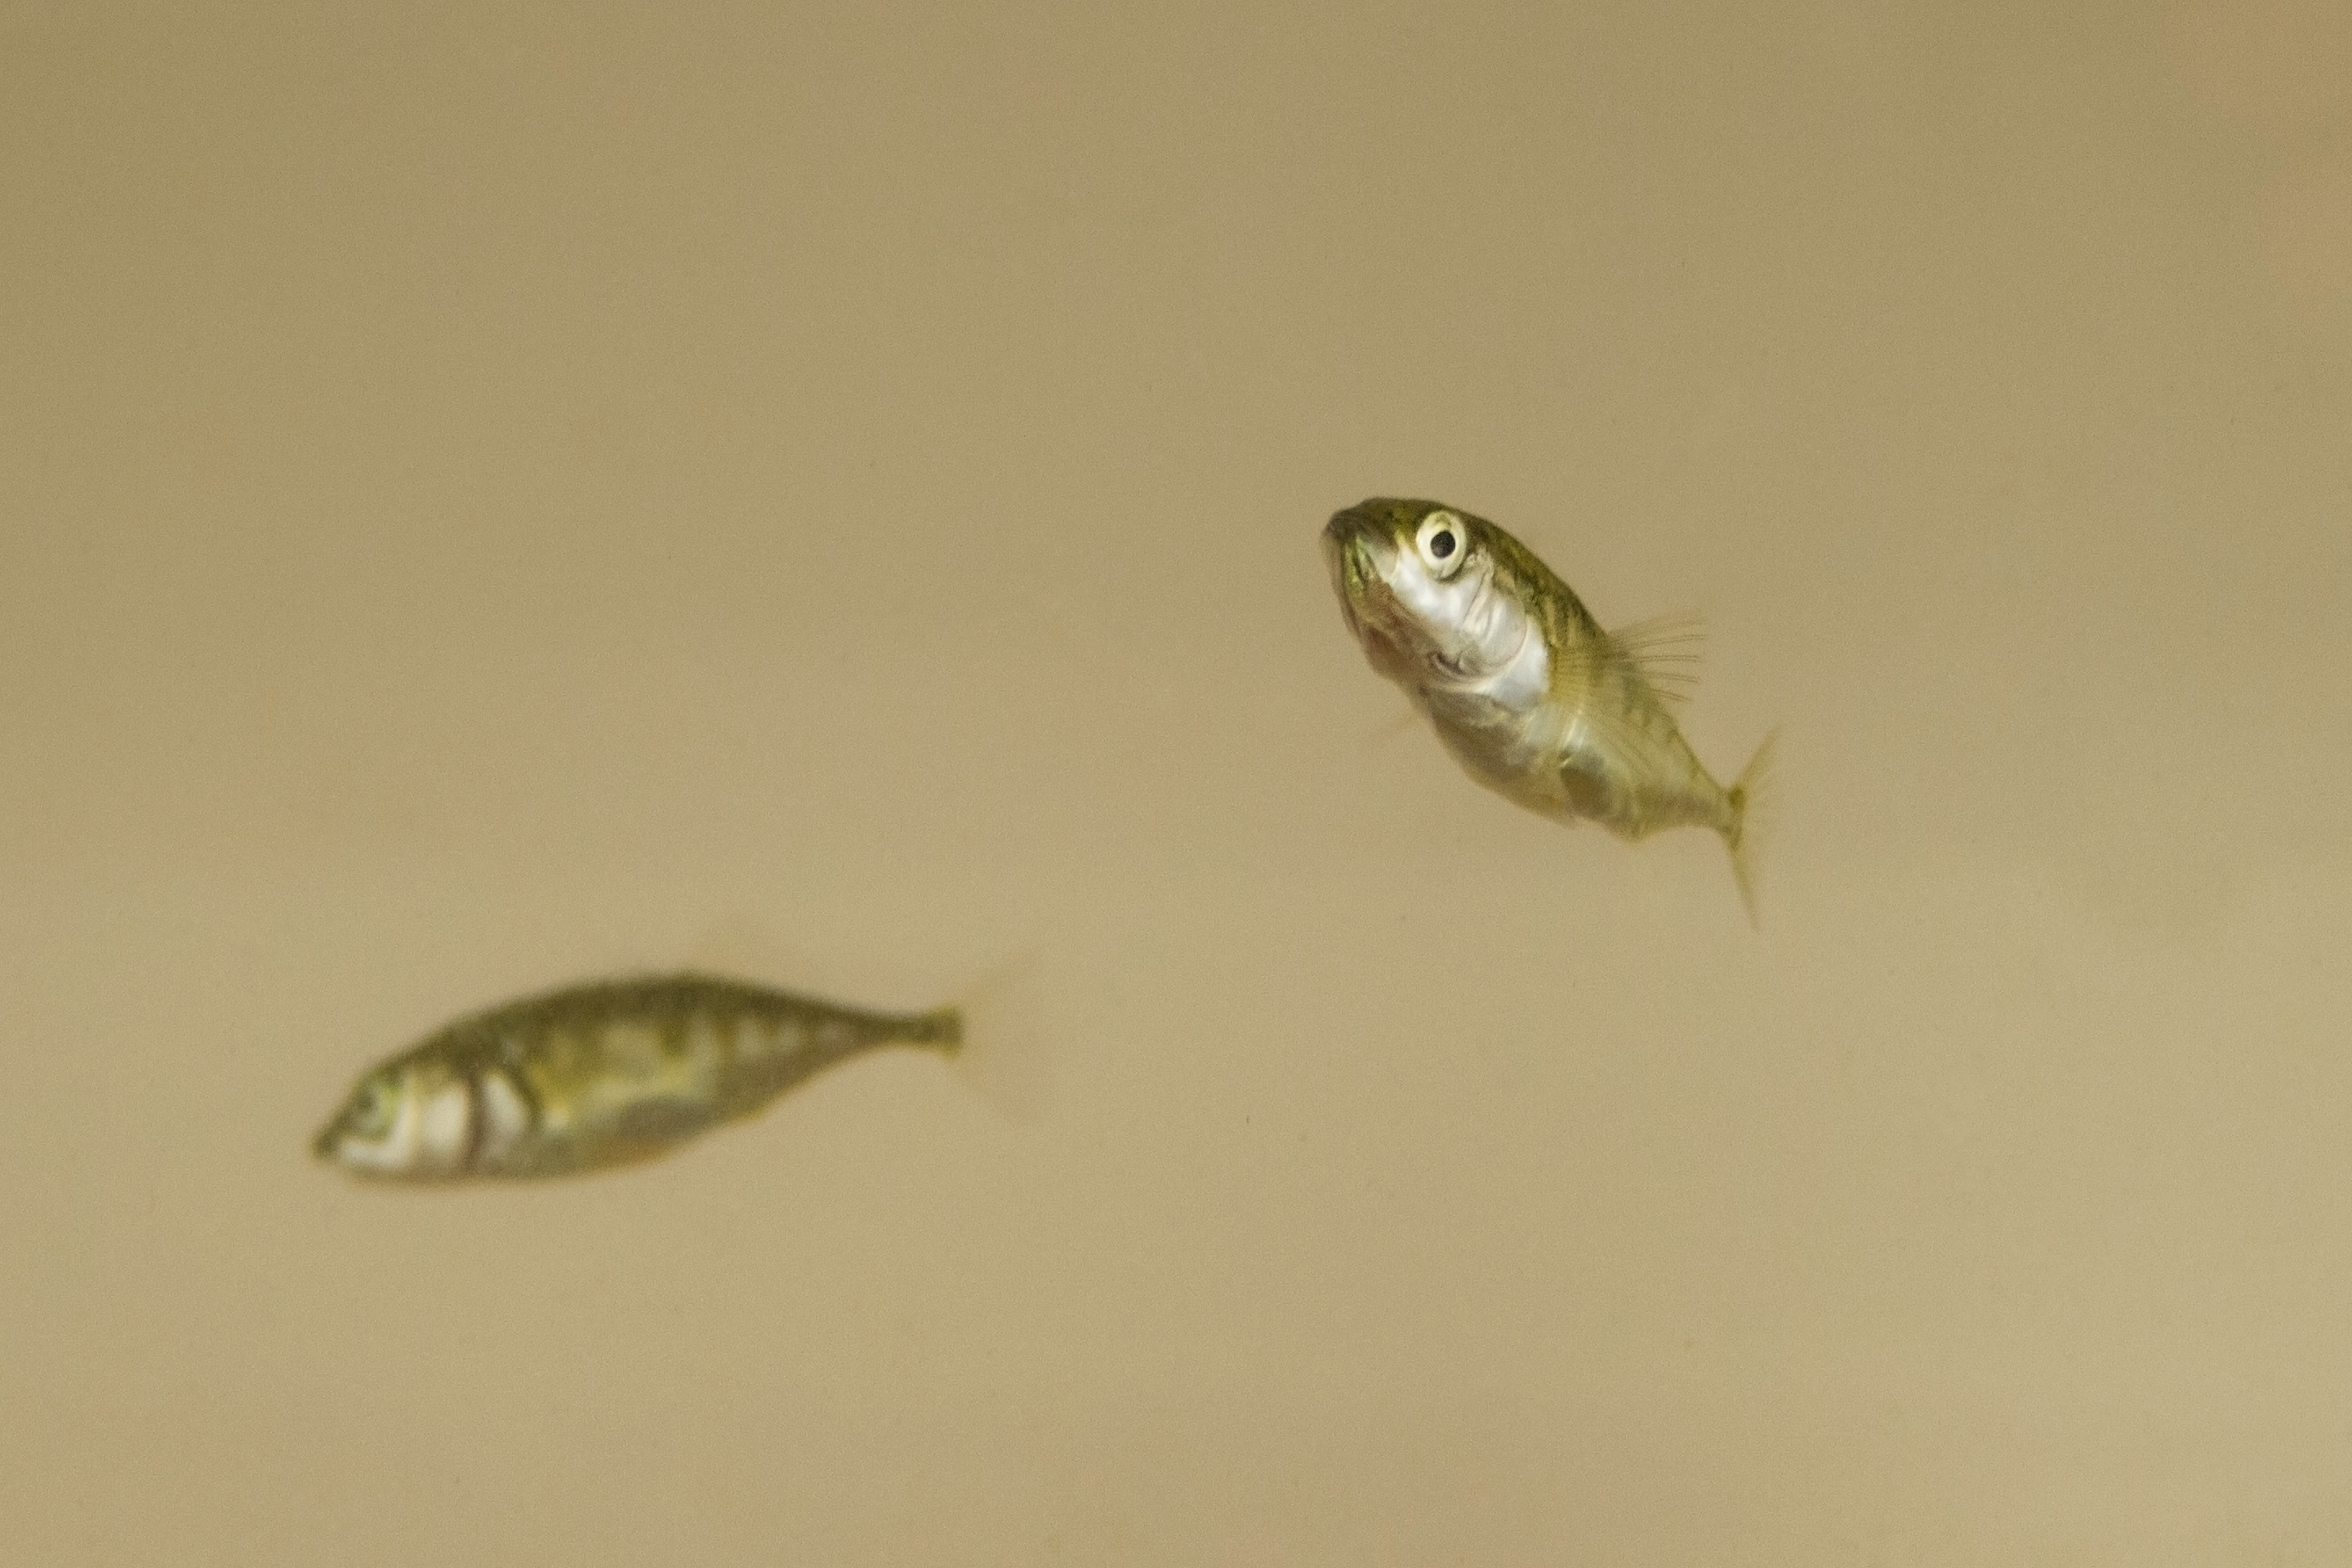 Two sticklebacks with different characteristics. Photo copyright: Jolle Jolles